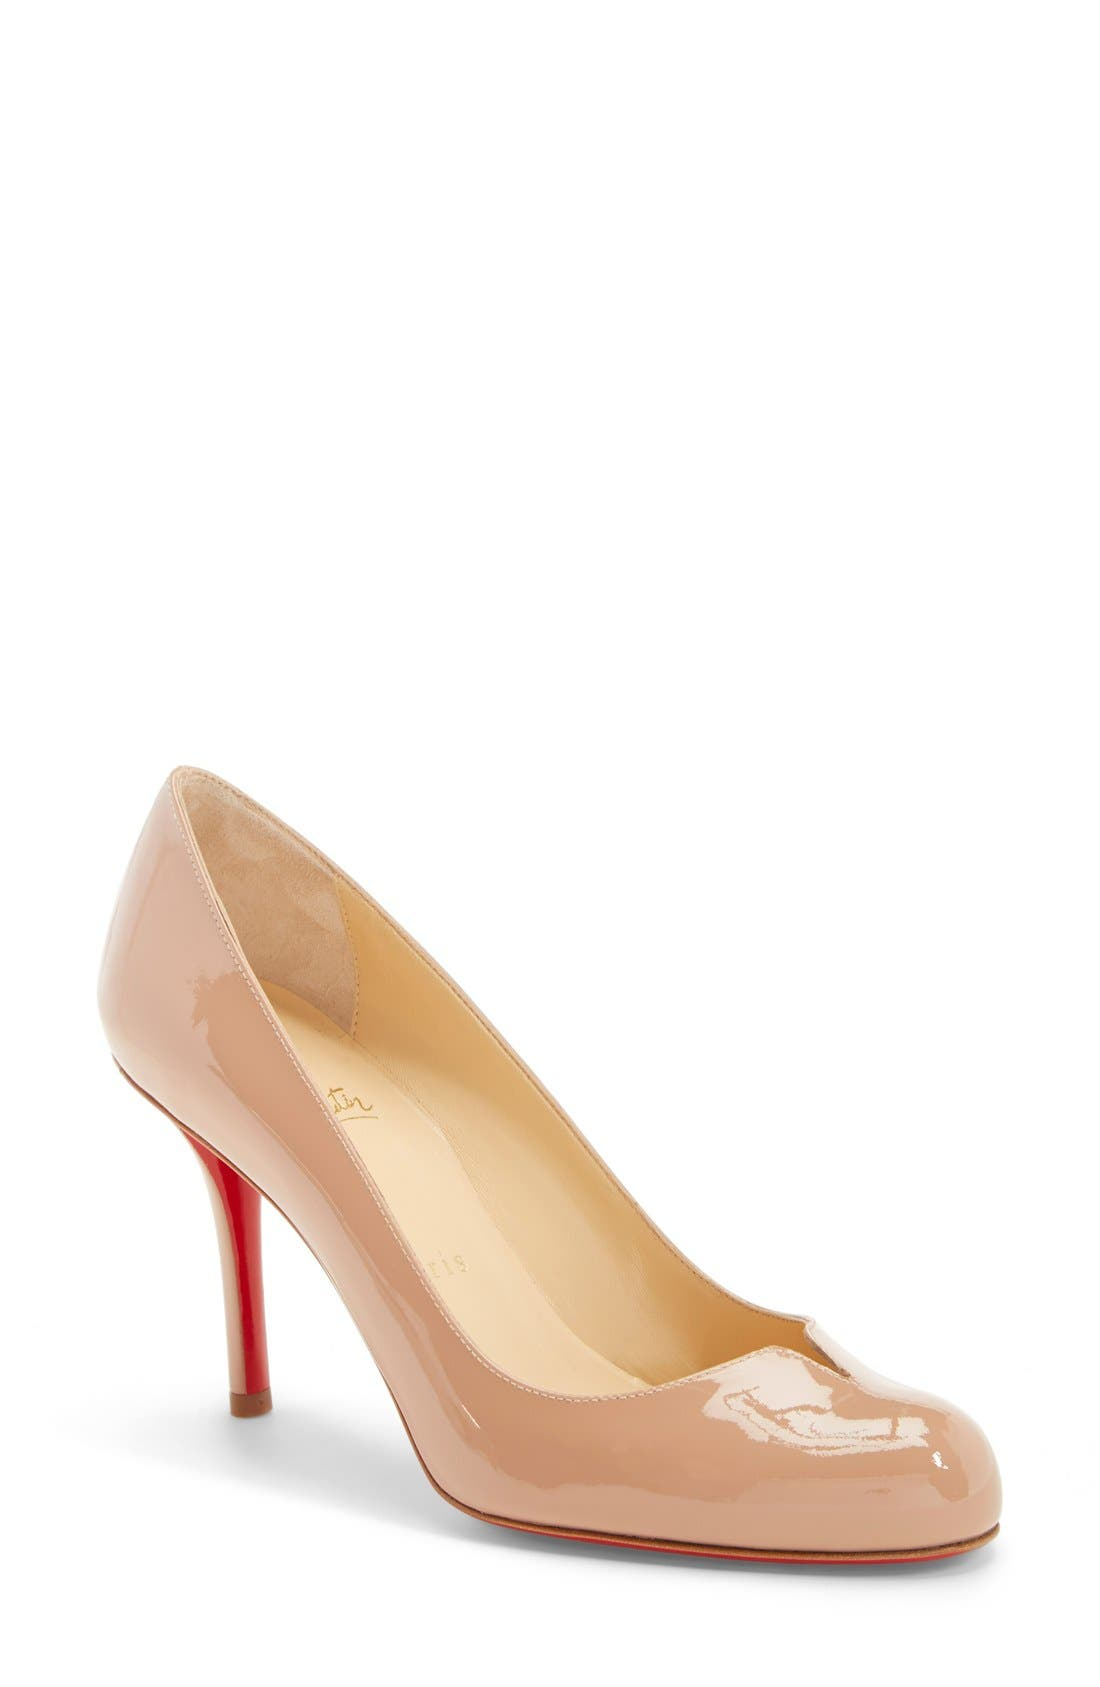 Alternate Image 1 Selected - Christian Louboutin 'Sophia Regina' Notched Round Toe Pump